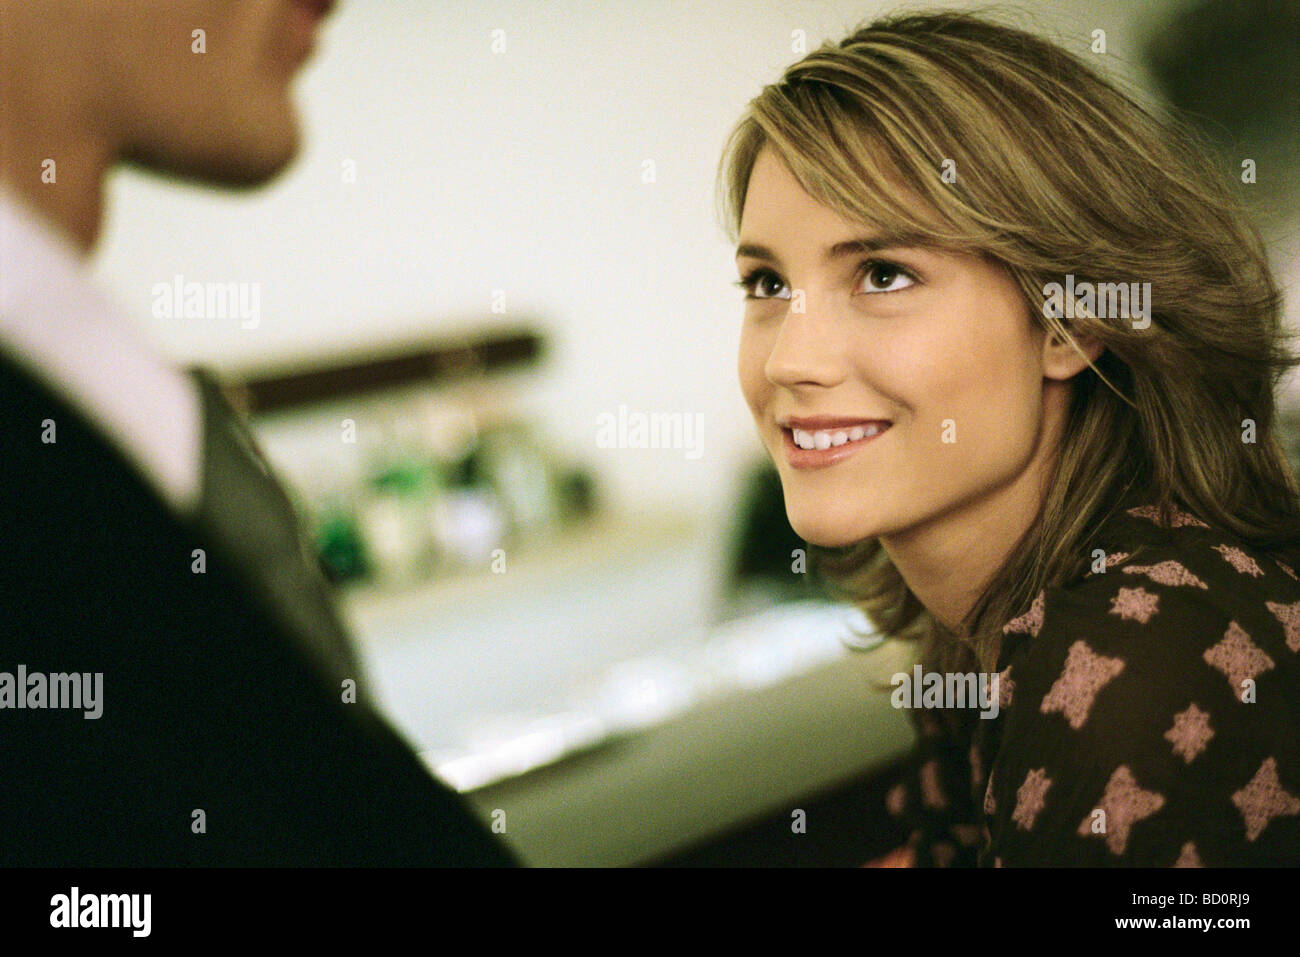 Young woman smiling looking up at man - Stock Image